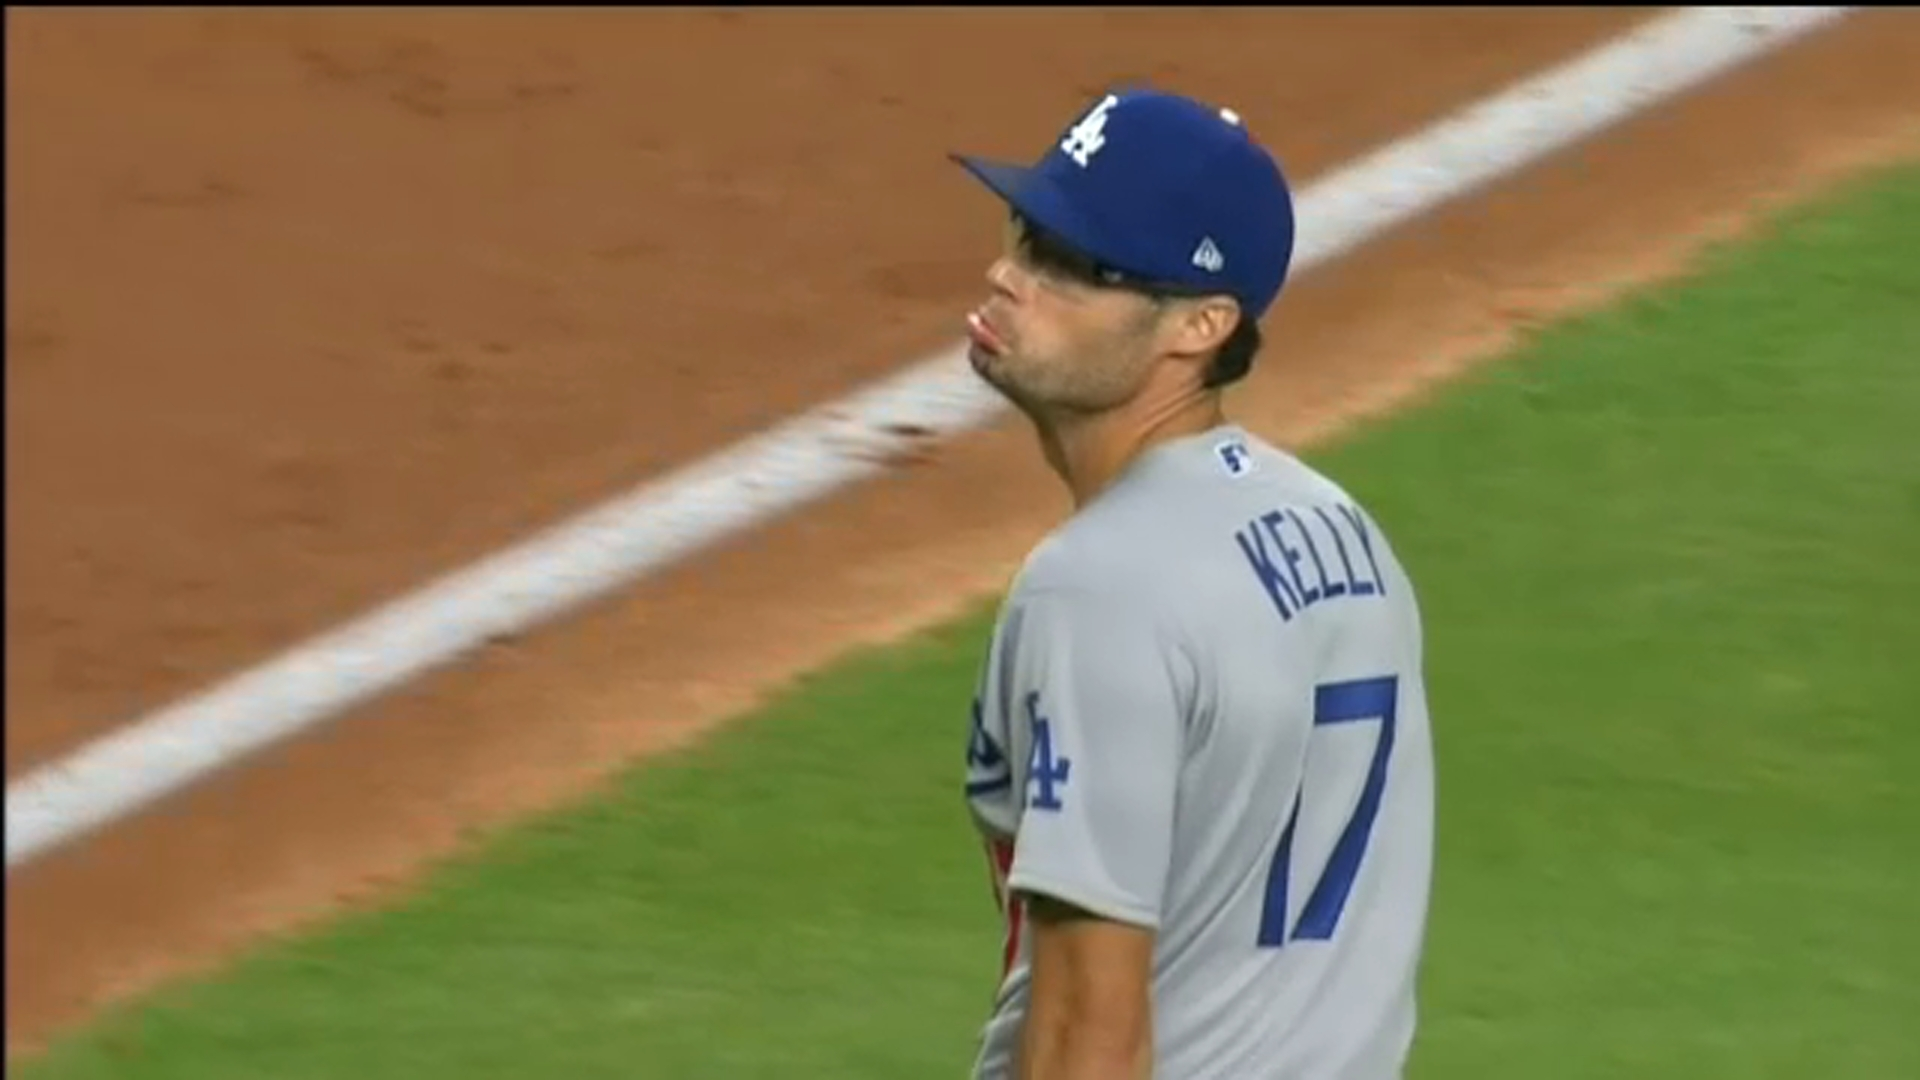 Dodgers Joe Kelly Has Suspension Reduced To 5 Games On Appeal After Bench Clearing Incident With Houston Abc7 Los Angeles Joe kelly was able to get the final out despite issuing two walks on wednesday to pick up a save in game 2 of the nlds. dodgers kelly suspended for 8 games after astros incident